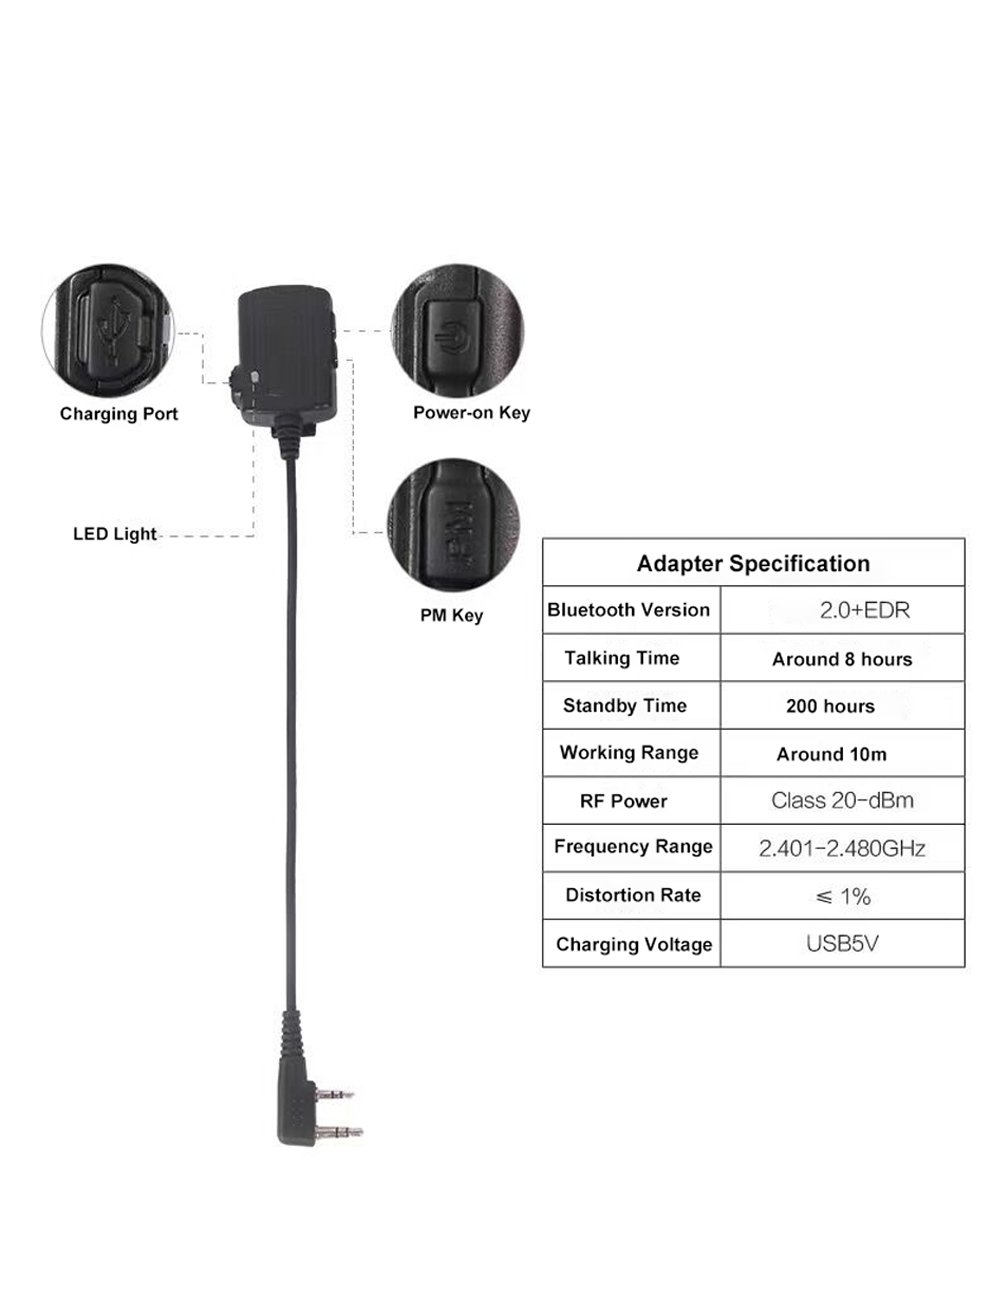 Amazon.com: ContalkeTech Walkie Talkie Wireless Bluetooth Headset for Motorola HYT Relm Tekk Two Way Radio M1 Connector Optional Connectors for Other Radios ...